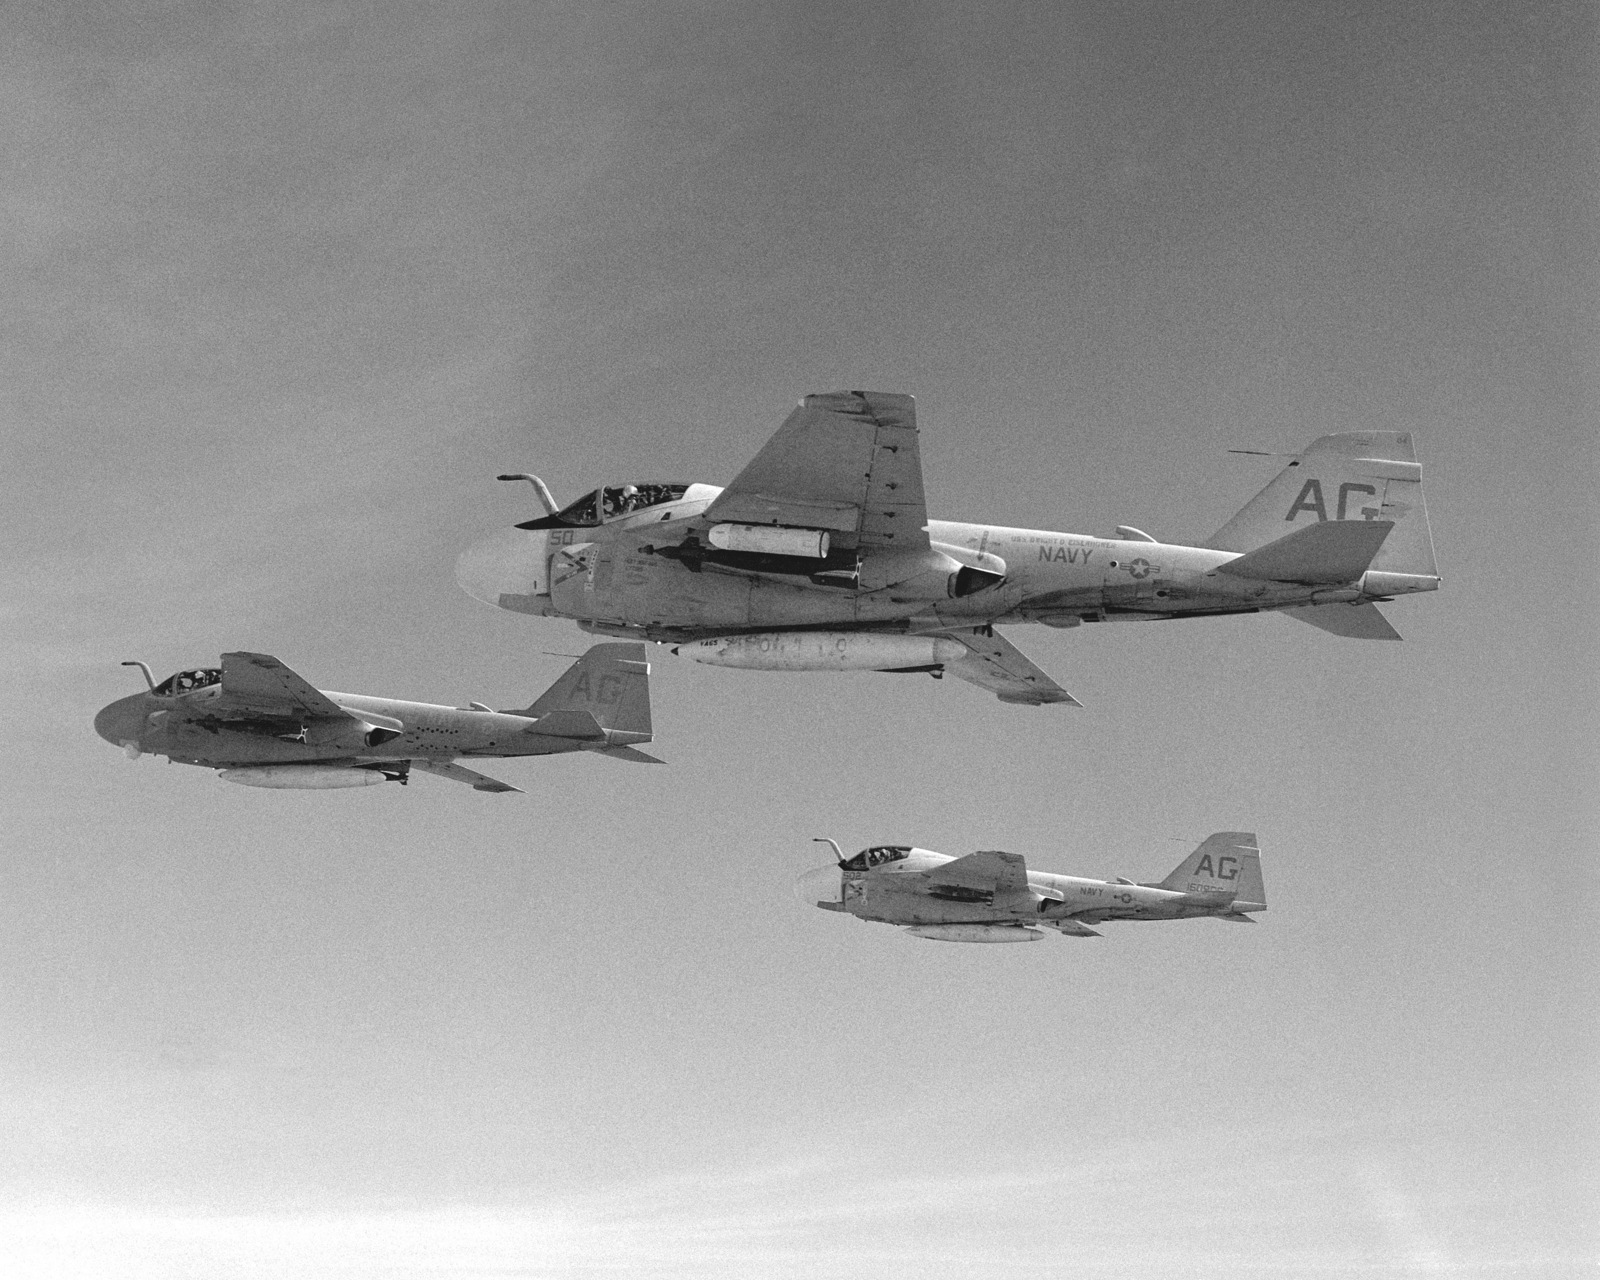 An air-to-air left side view of three A-6E Intruder aircraft with a new tactical paint scheme. They are assigned to Medium Attack Squadron 65 (VA-65)